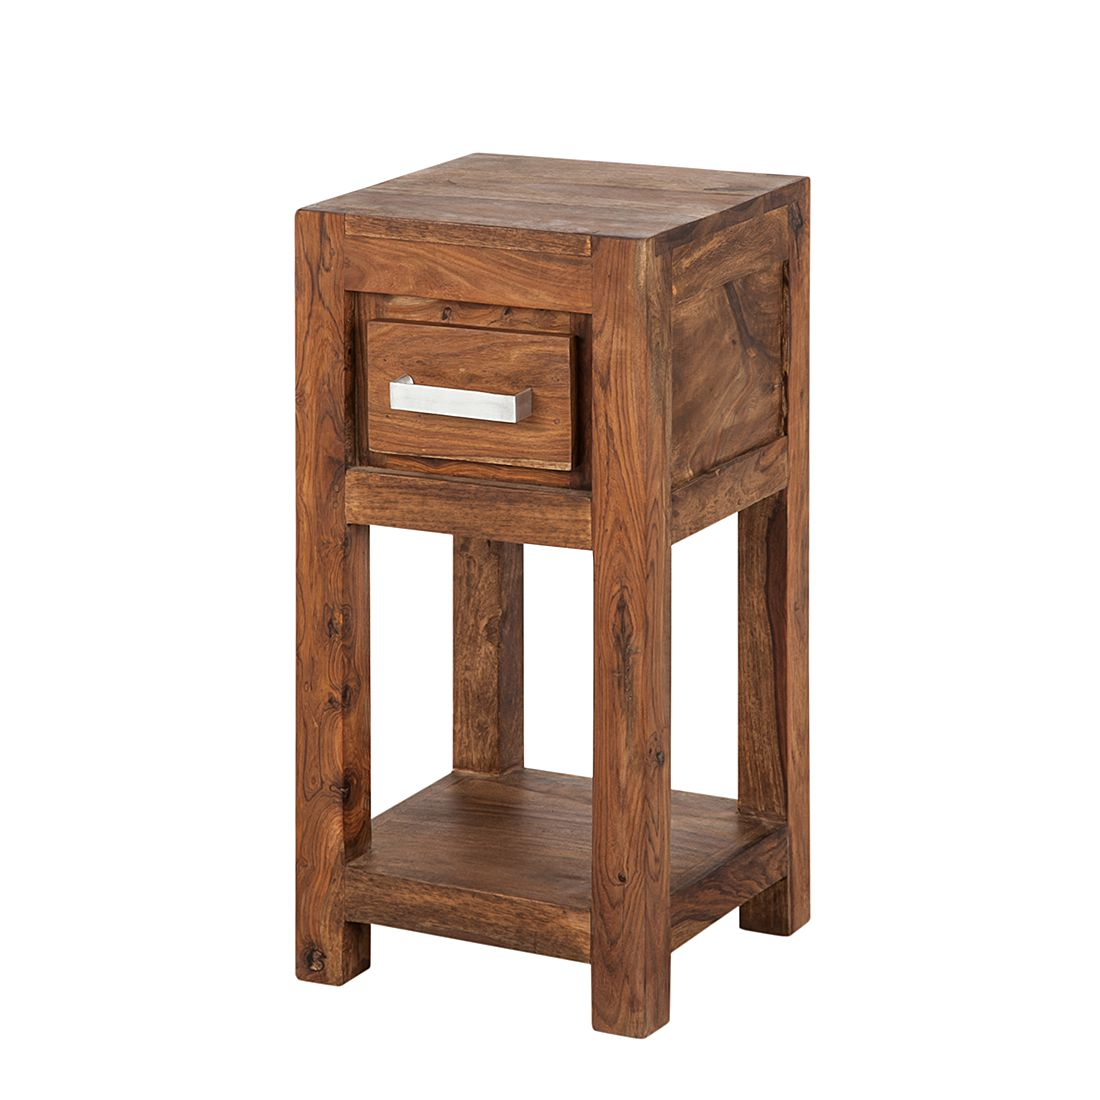 Table d'appoint Ohio - Sheesham - 60 cm, Ars Natura